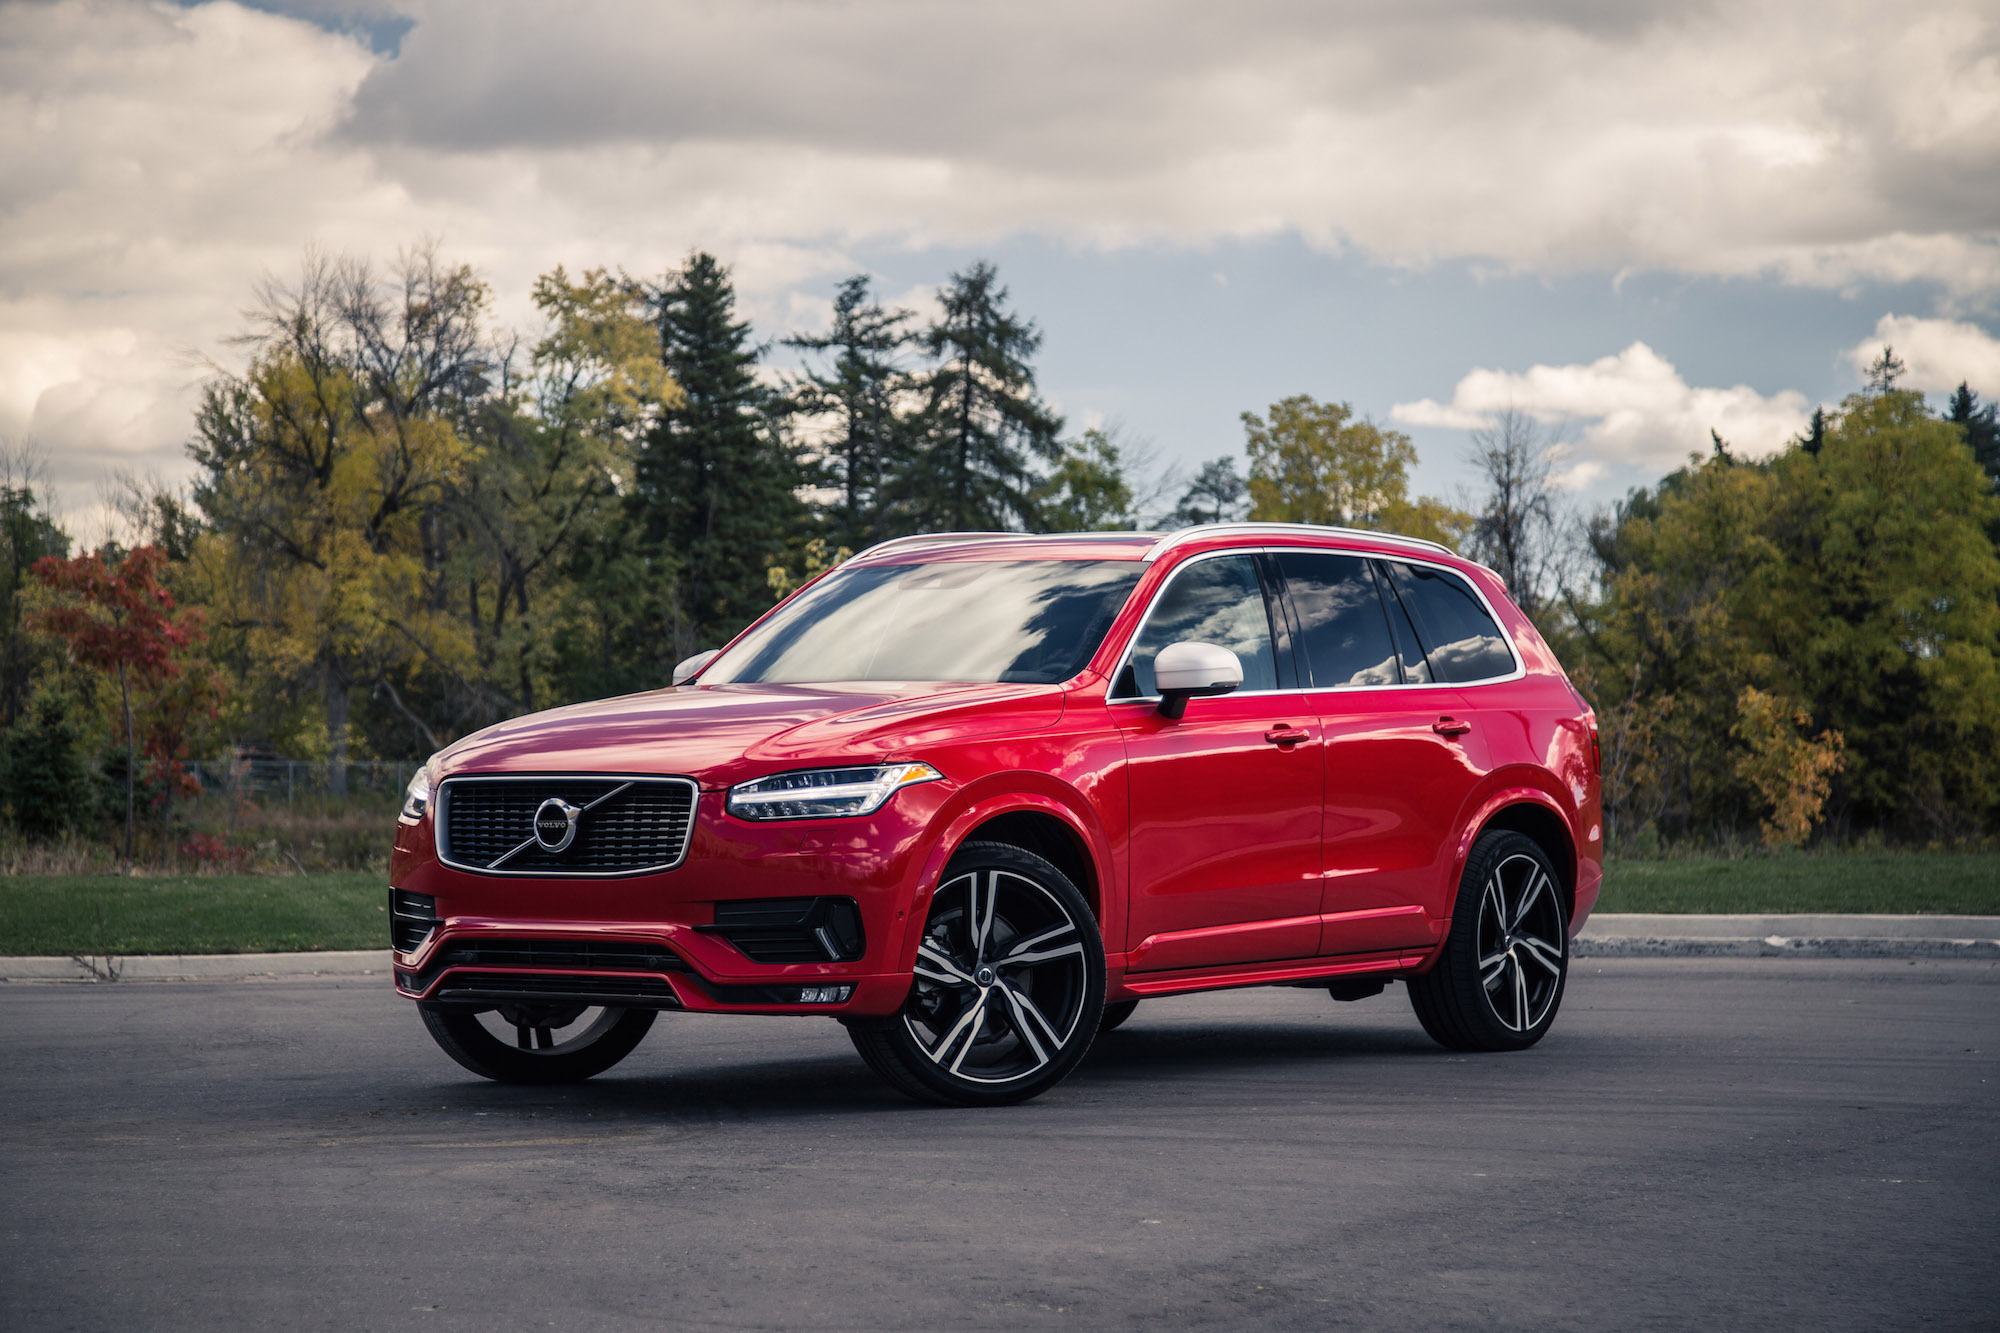 Acura Suv 2016 >> Review: 2016 Volvo XC90 T6 R-Design | Canadian Auto Review